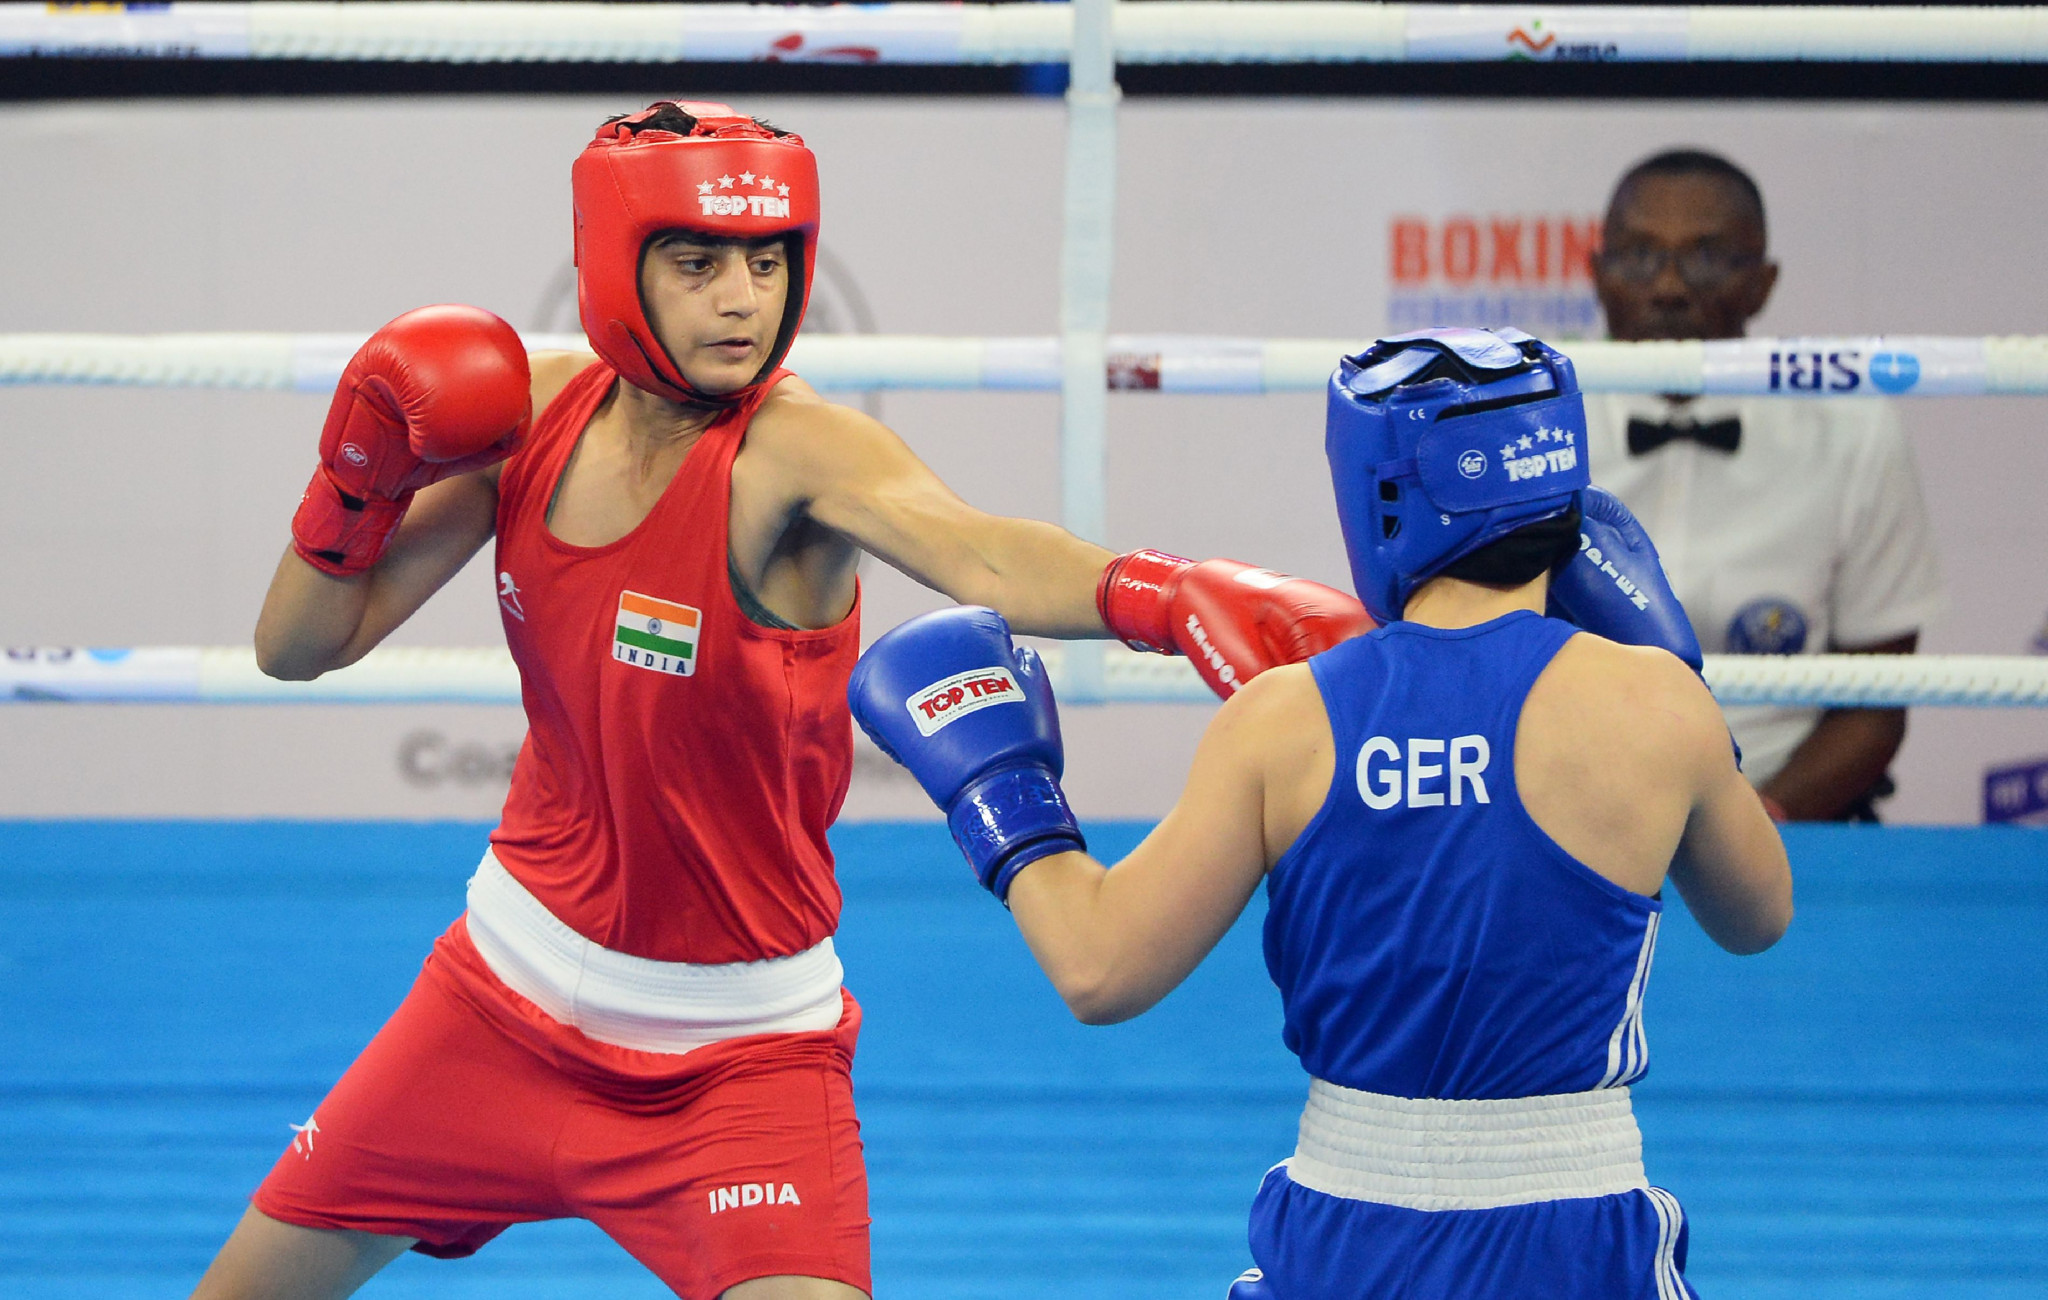 World Championships silver medallist Sonia Chahal of India progressed to the quarter-finals of the women's featherweight division ©Getty Images